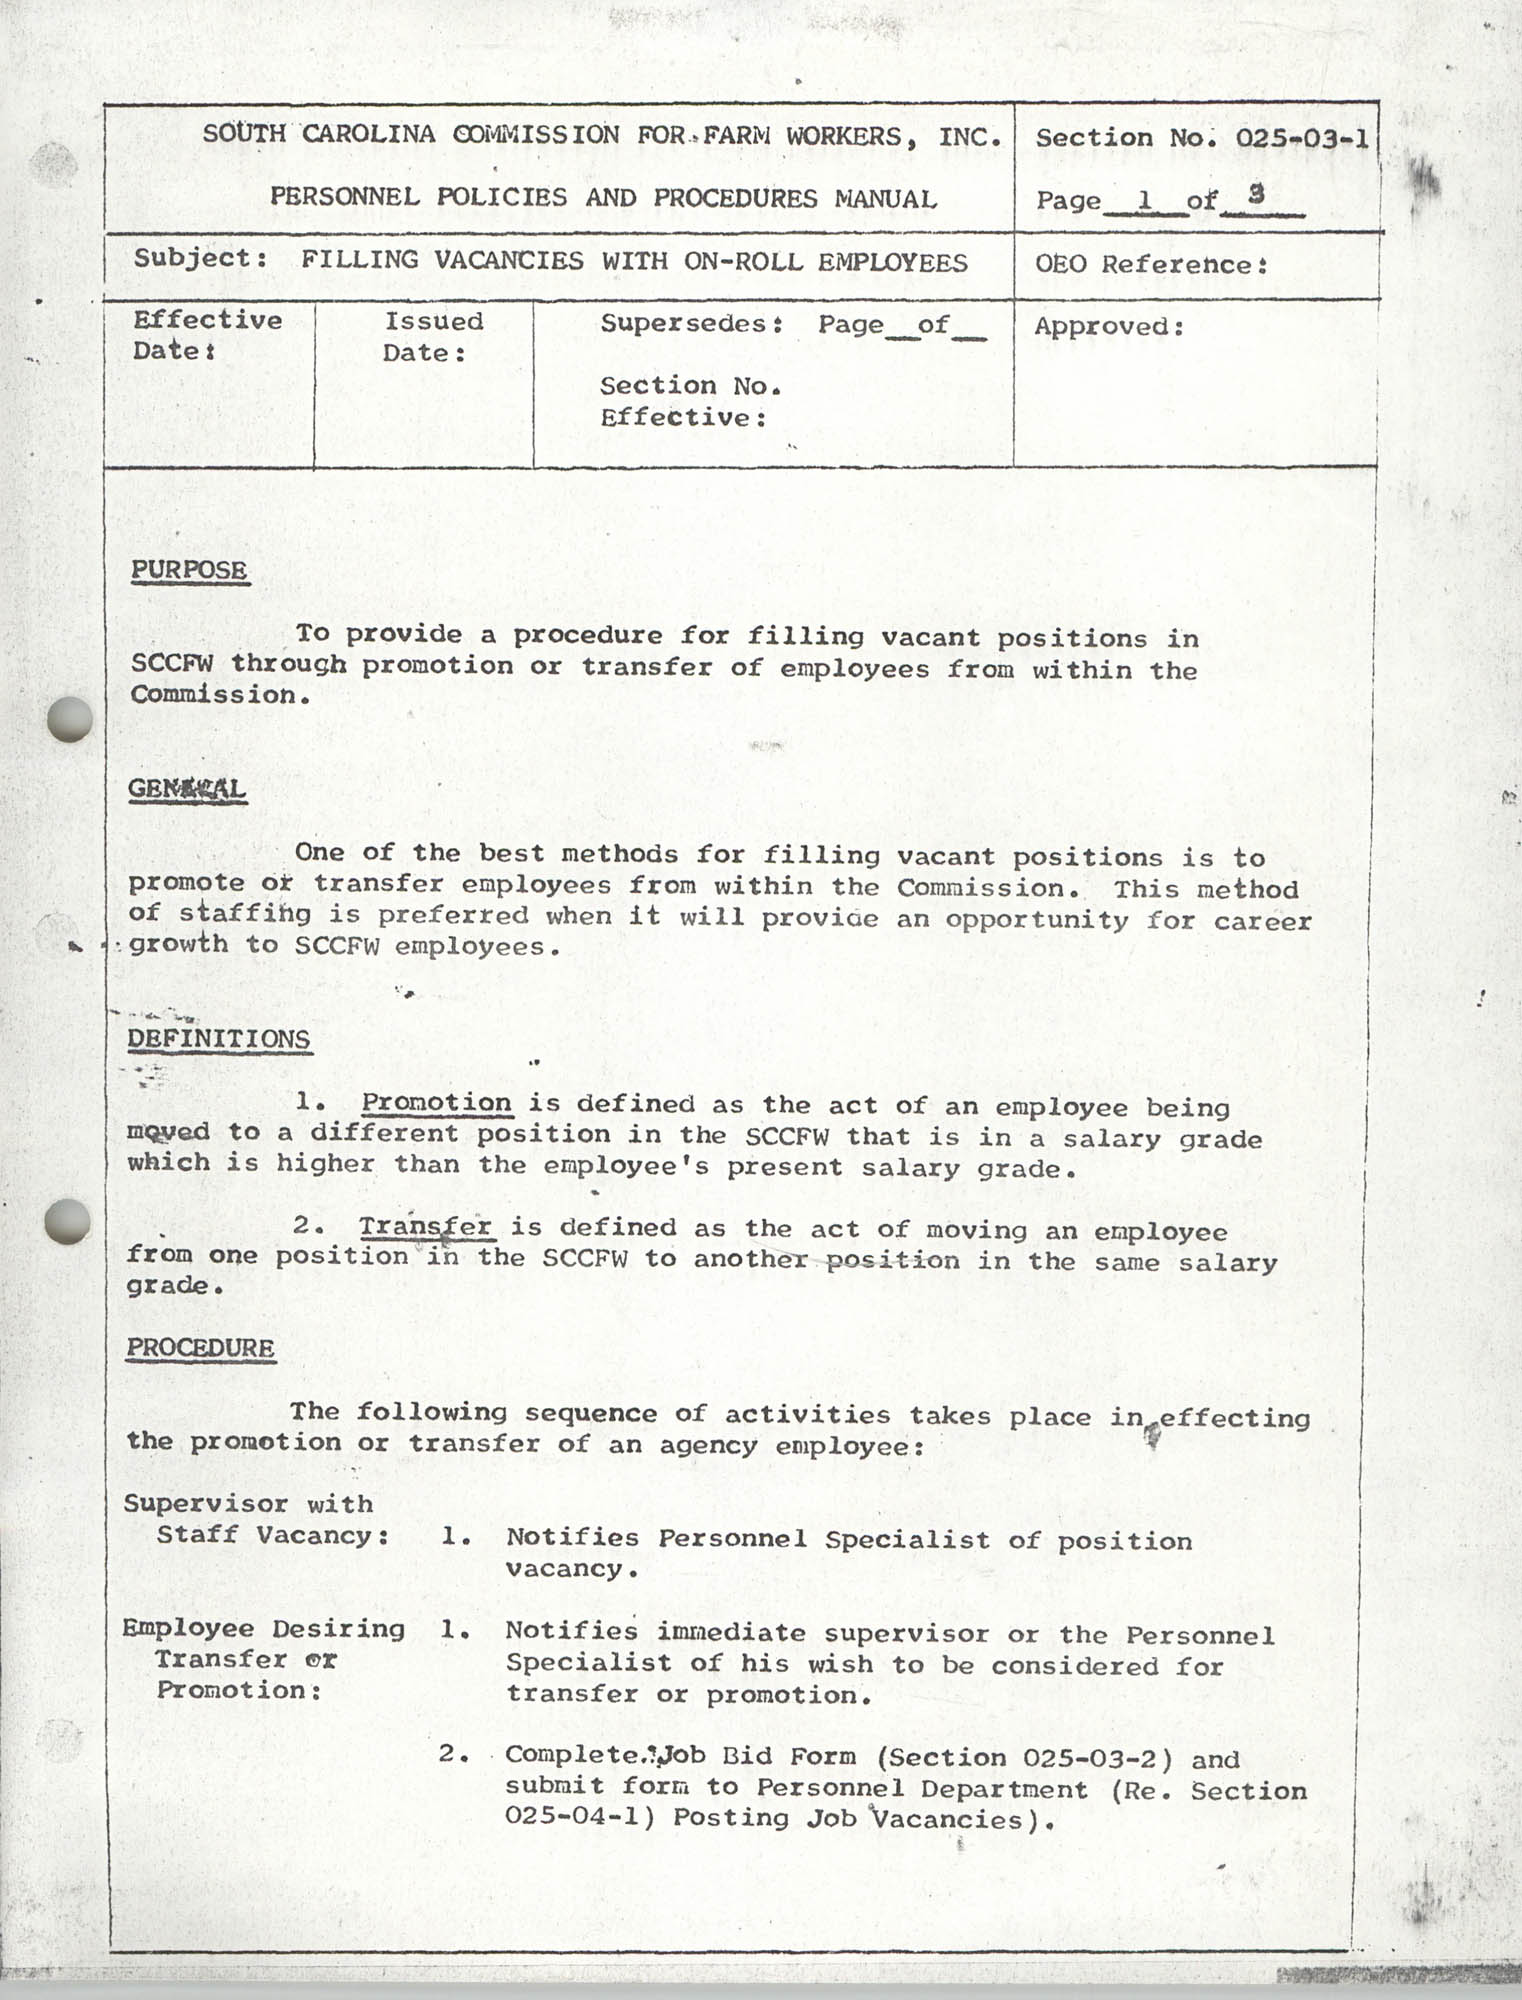 Personnel Policies and Procedures Manual, Section No. 025-03-1, Page 1